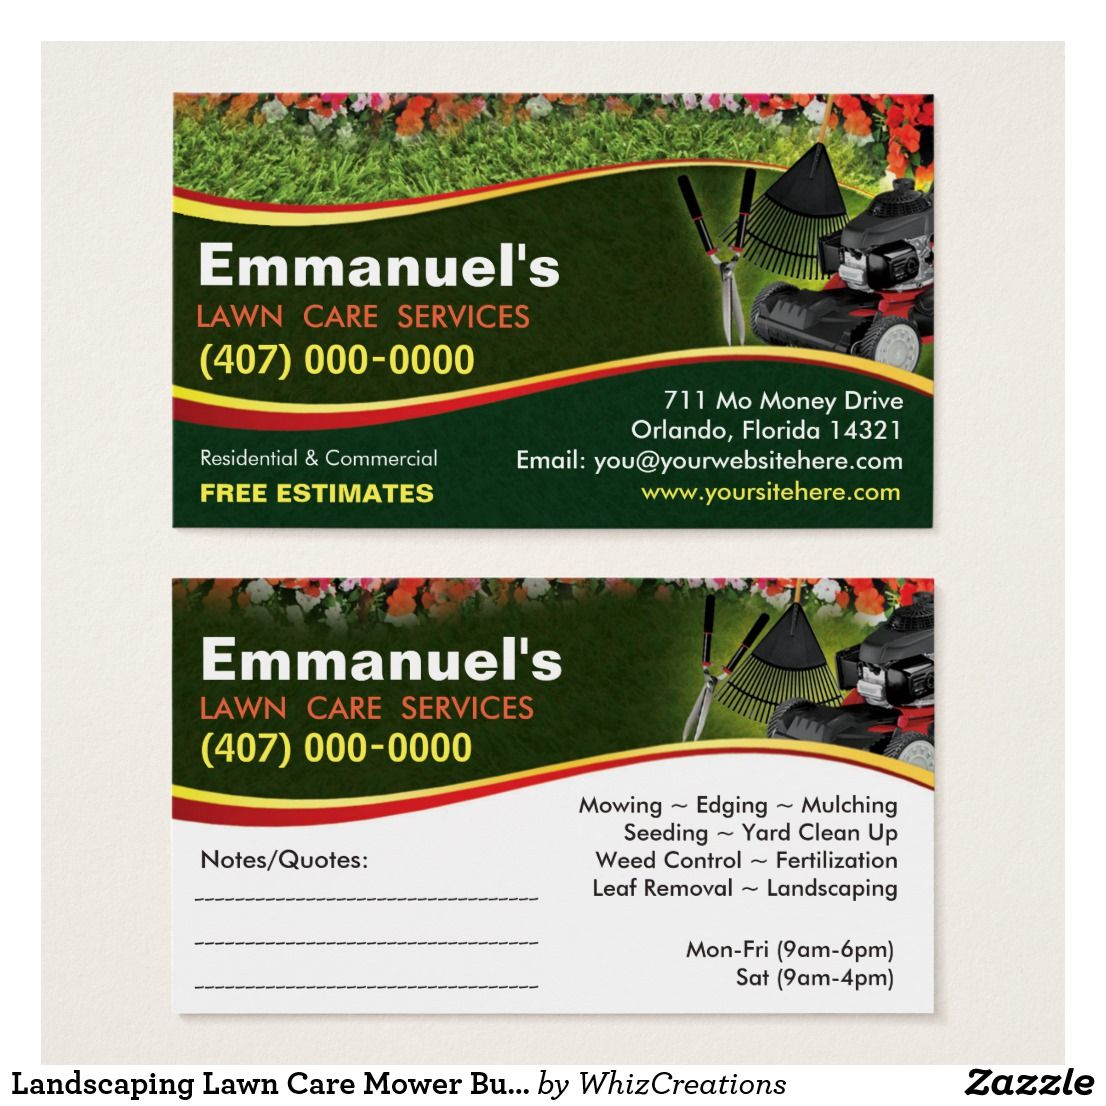 Landscaping Lawn Care Mower Business Card Template Zazzle Com Lawn Care Business Card Template Landscaping Business Cards